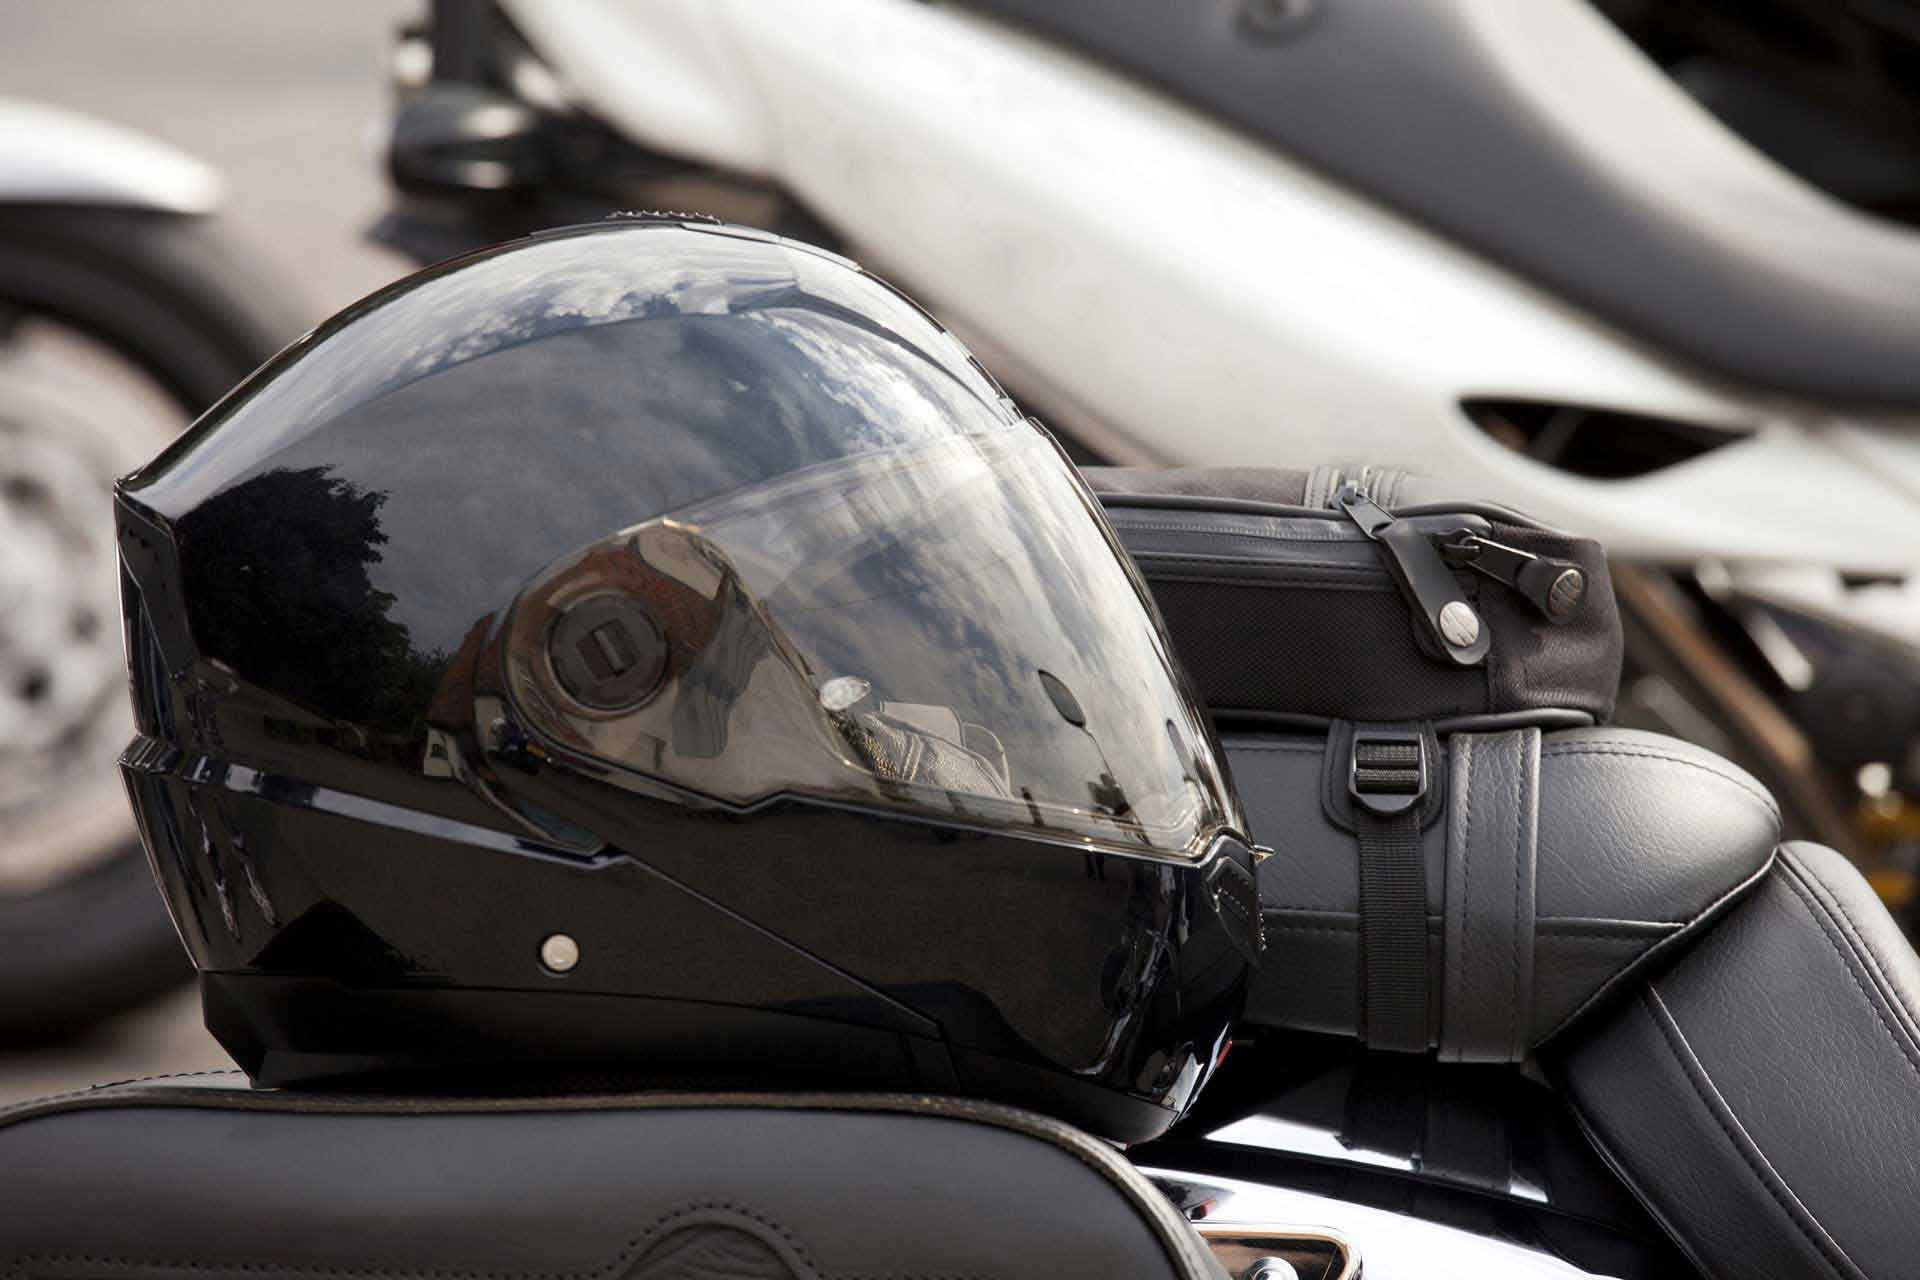 Scooters, mopeds, motorbikes, motorcycles, motocycles from Peugeot Motocycles UK